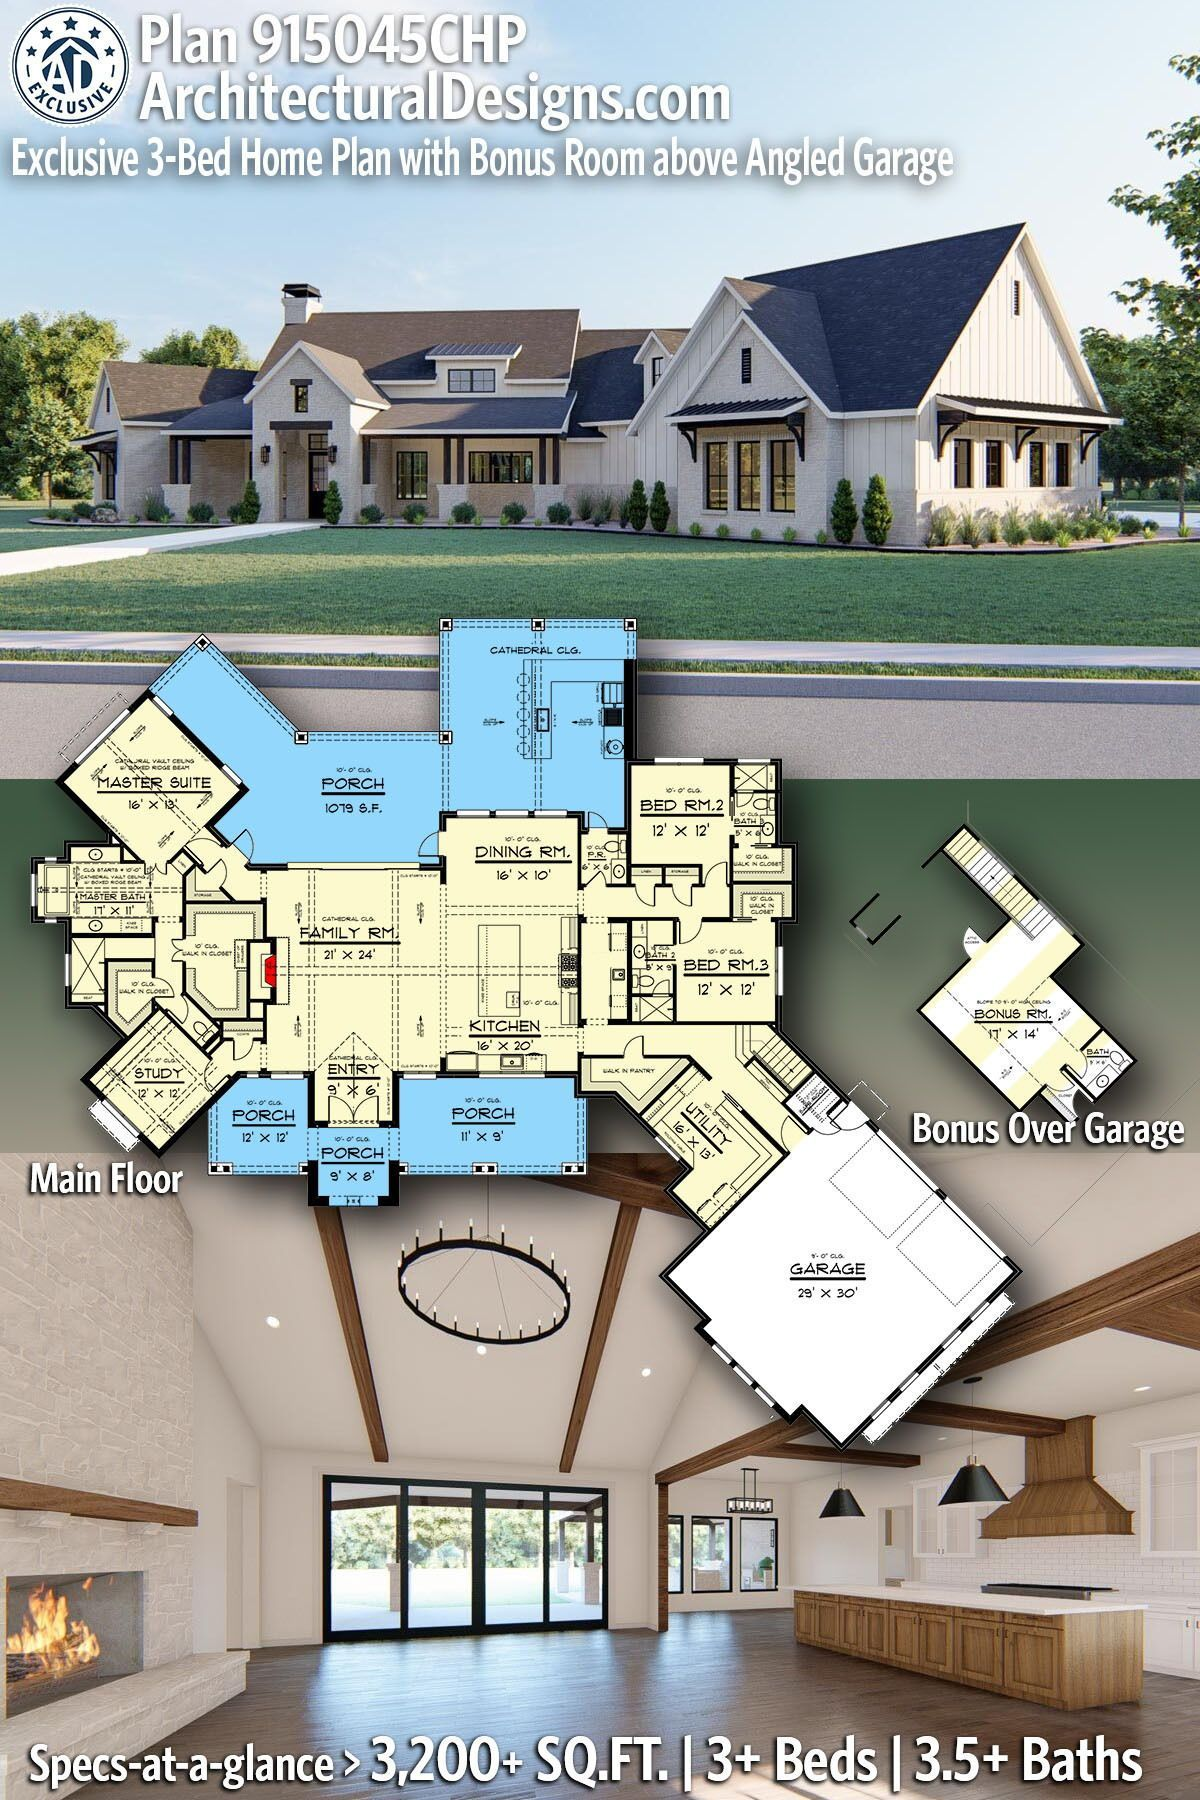 Plan 915045chp Exclusive 3 Bed Home Plan With Bonus Room Above Angled Garage In 2020 Multigenerational House Plans Dream House Plans Exclusive House Plan